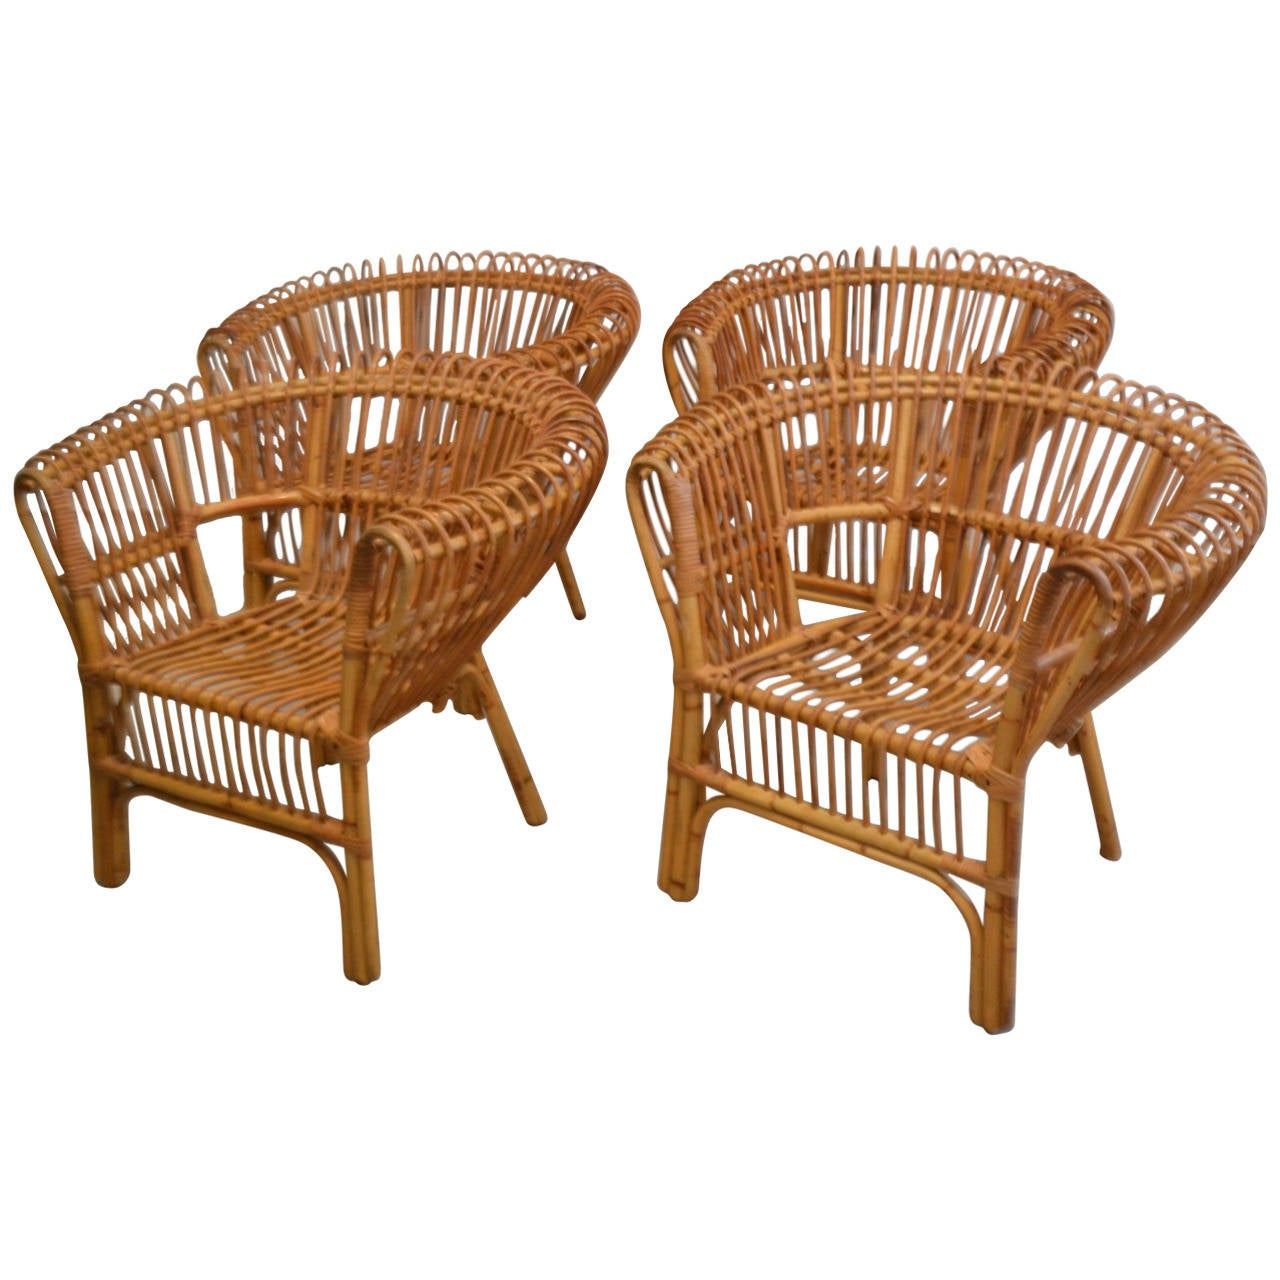 Italian Rattan Lounge Chair 1